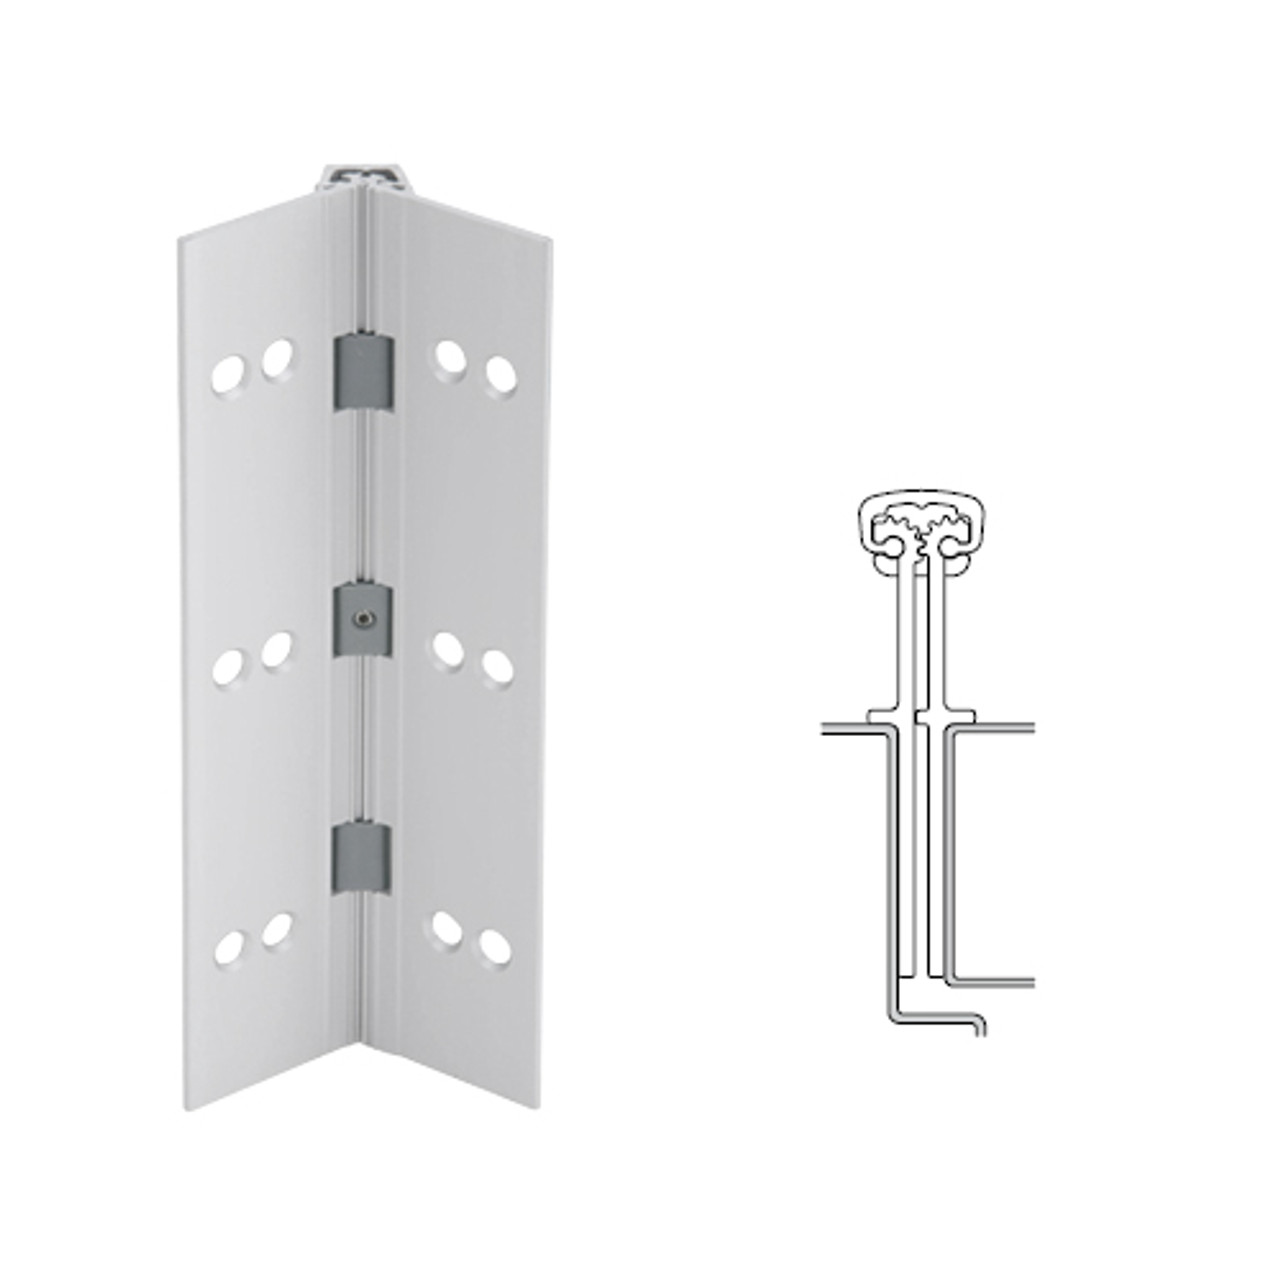 040XY-US28-95 IVES Full Mortise Continuous Geared Hinges in Satin Aluminum